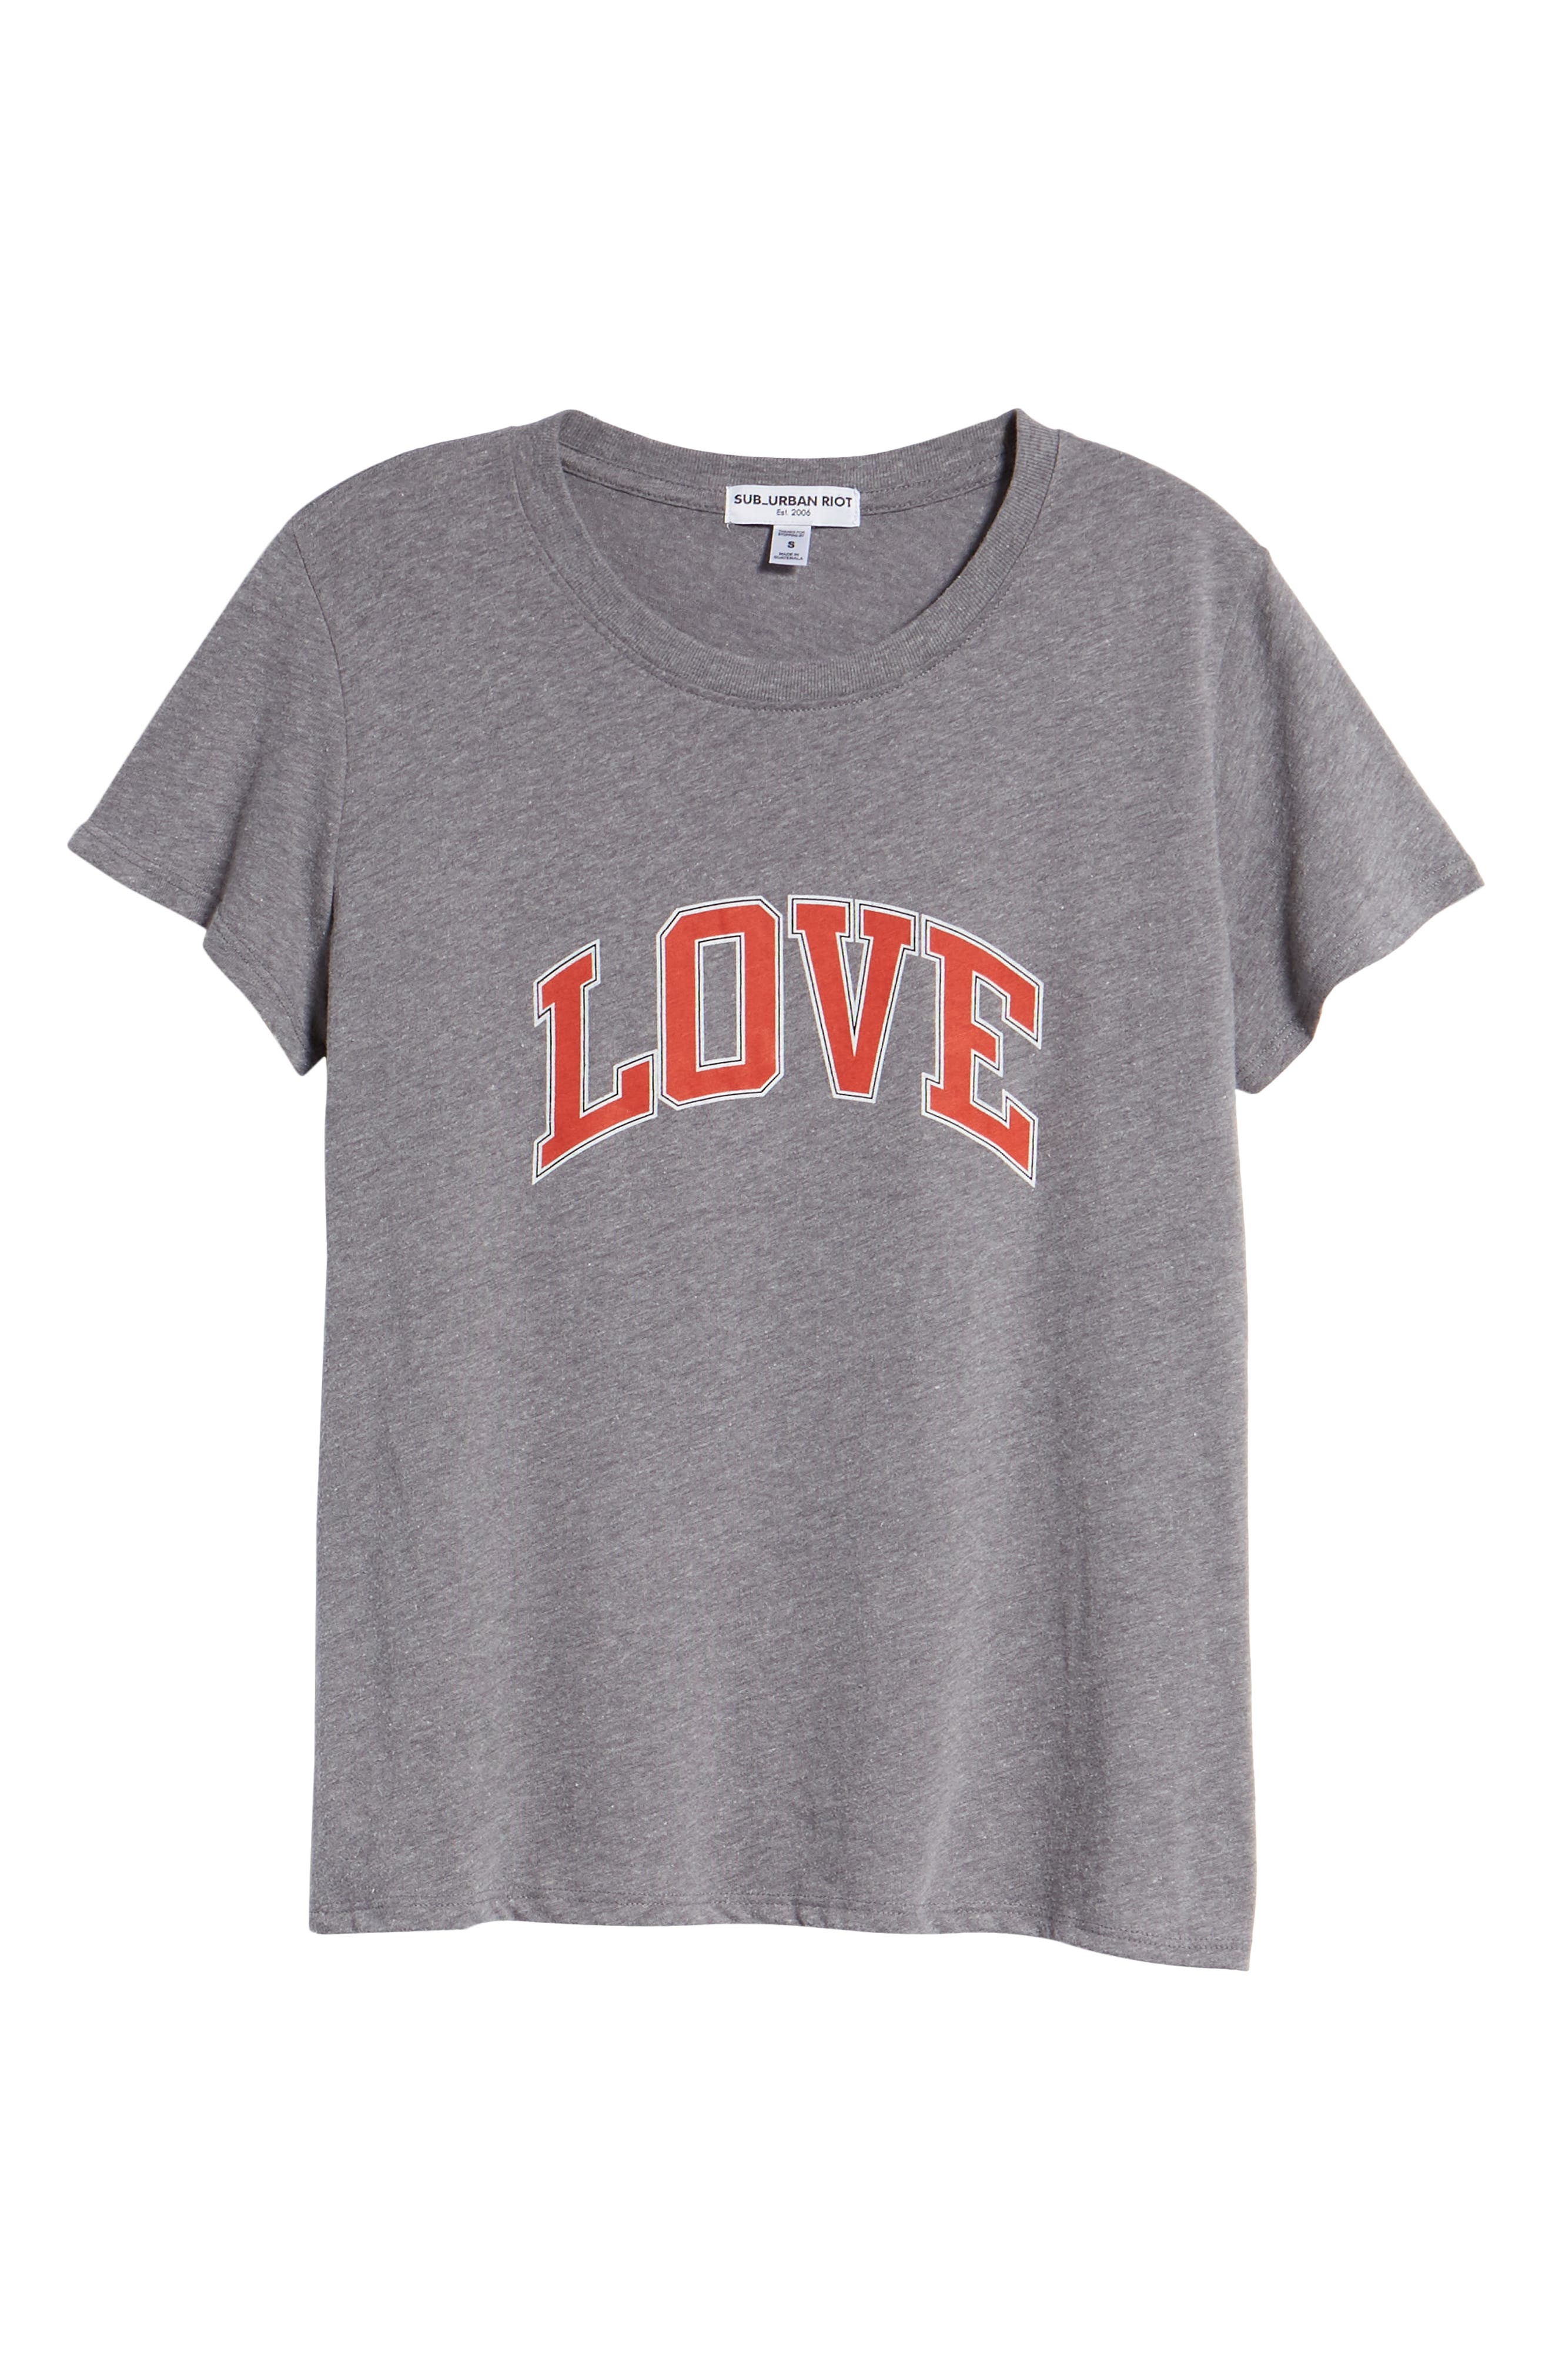 Love Tee,                             Alternate thumbnail 6, color,                             Heather Grey